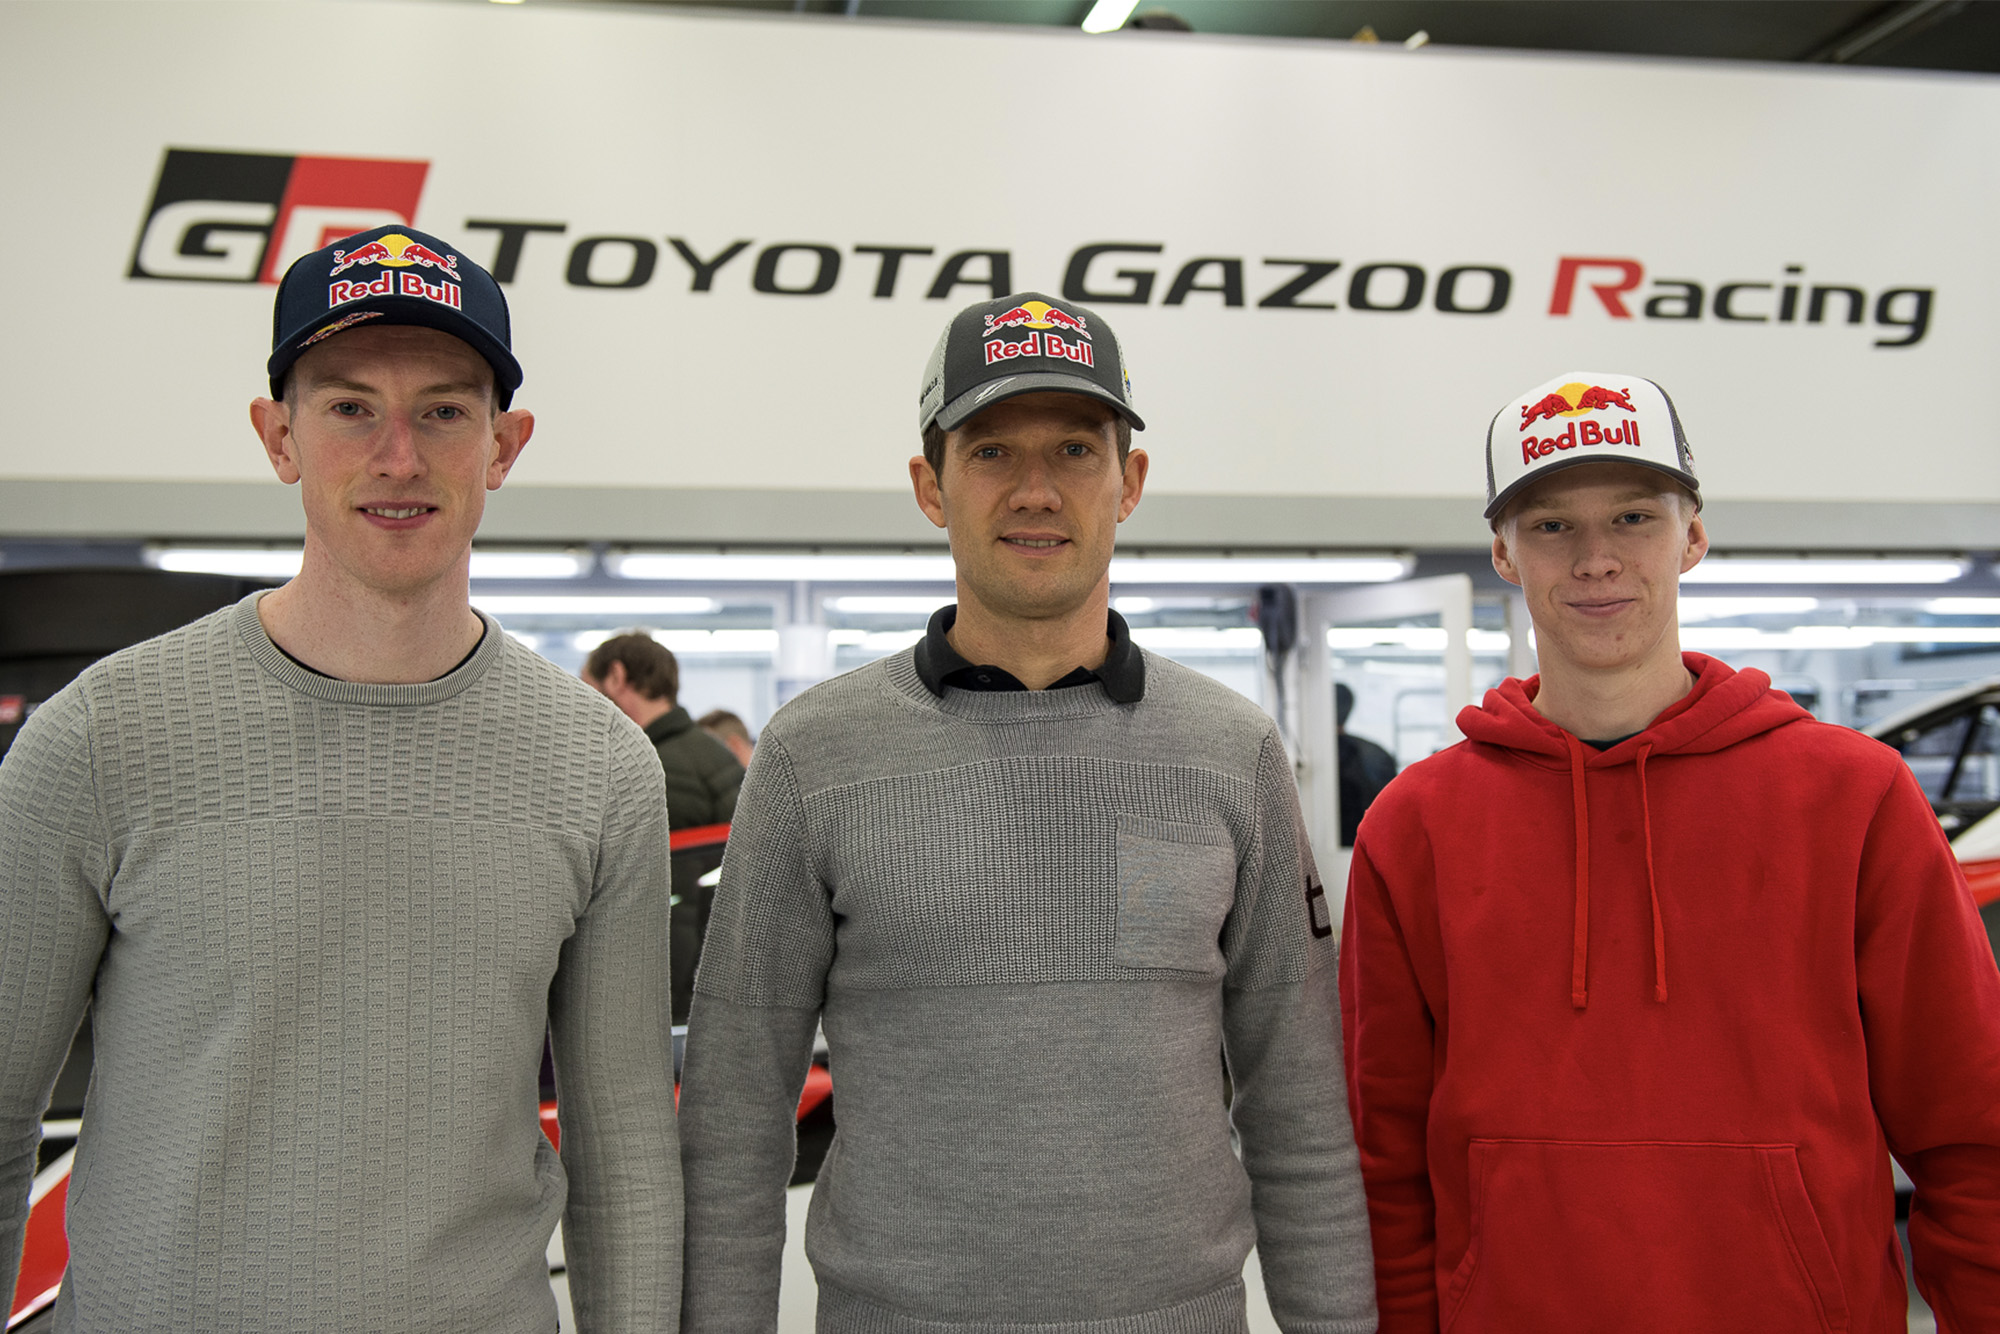 Sebastien Ogier, Elfyn Evans and Kalle Rovanpera as Toyota's 2020 WRC line-up